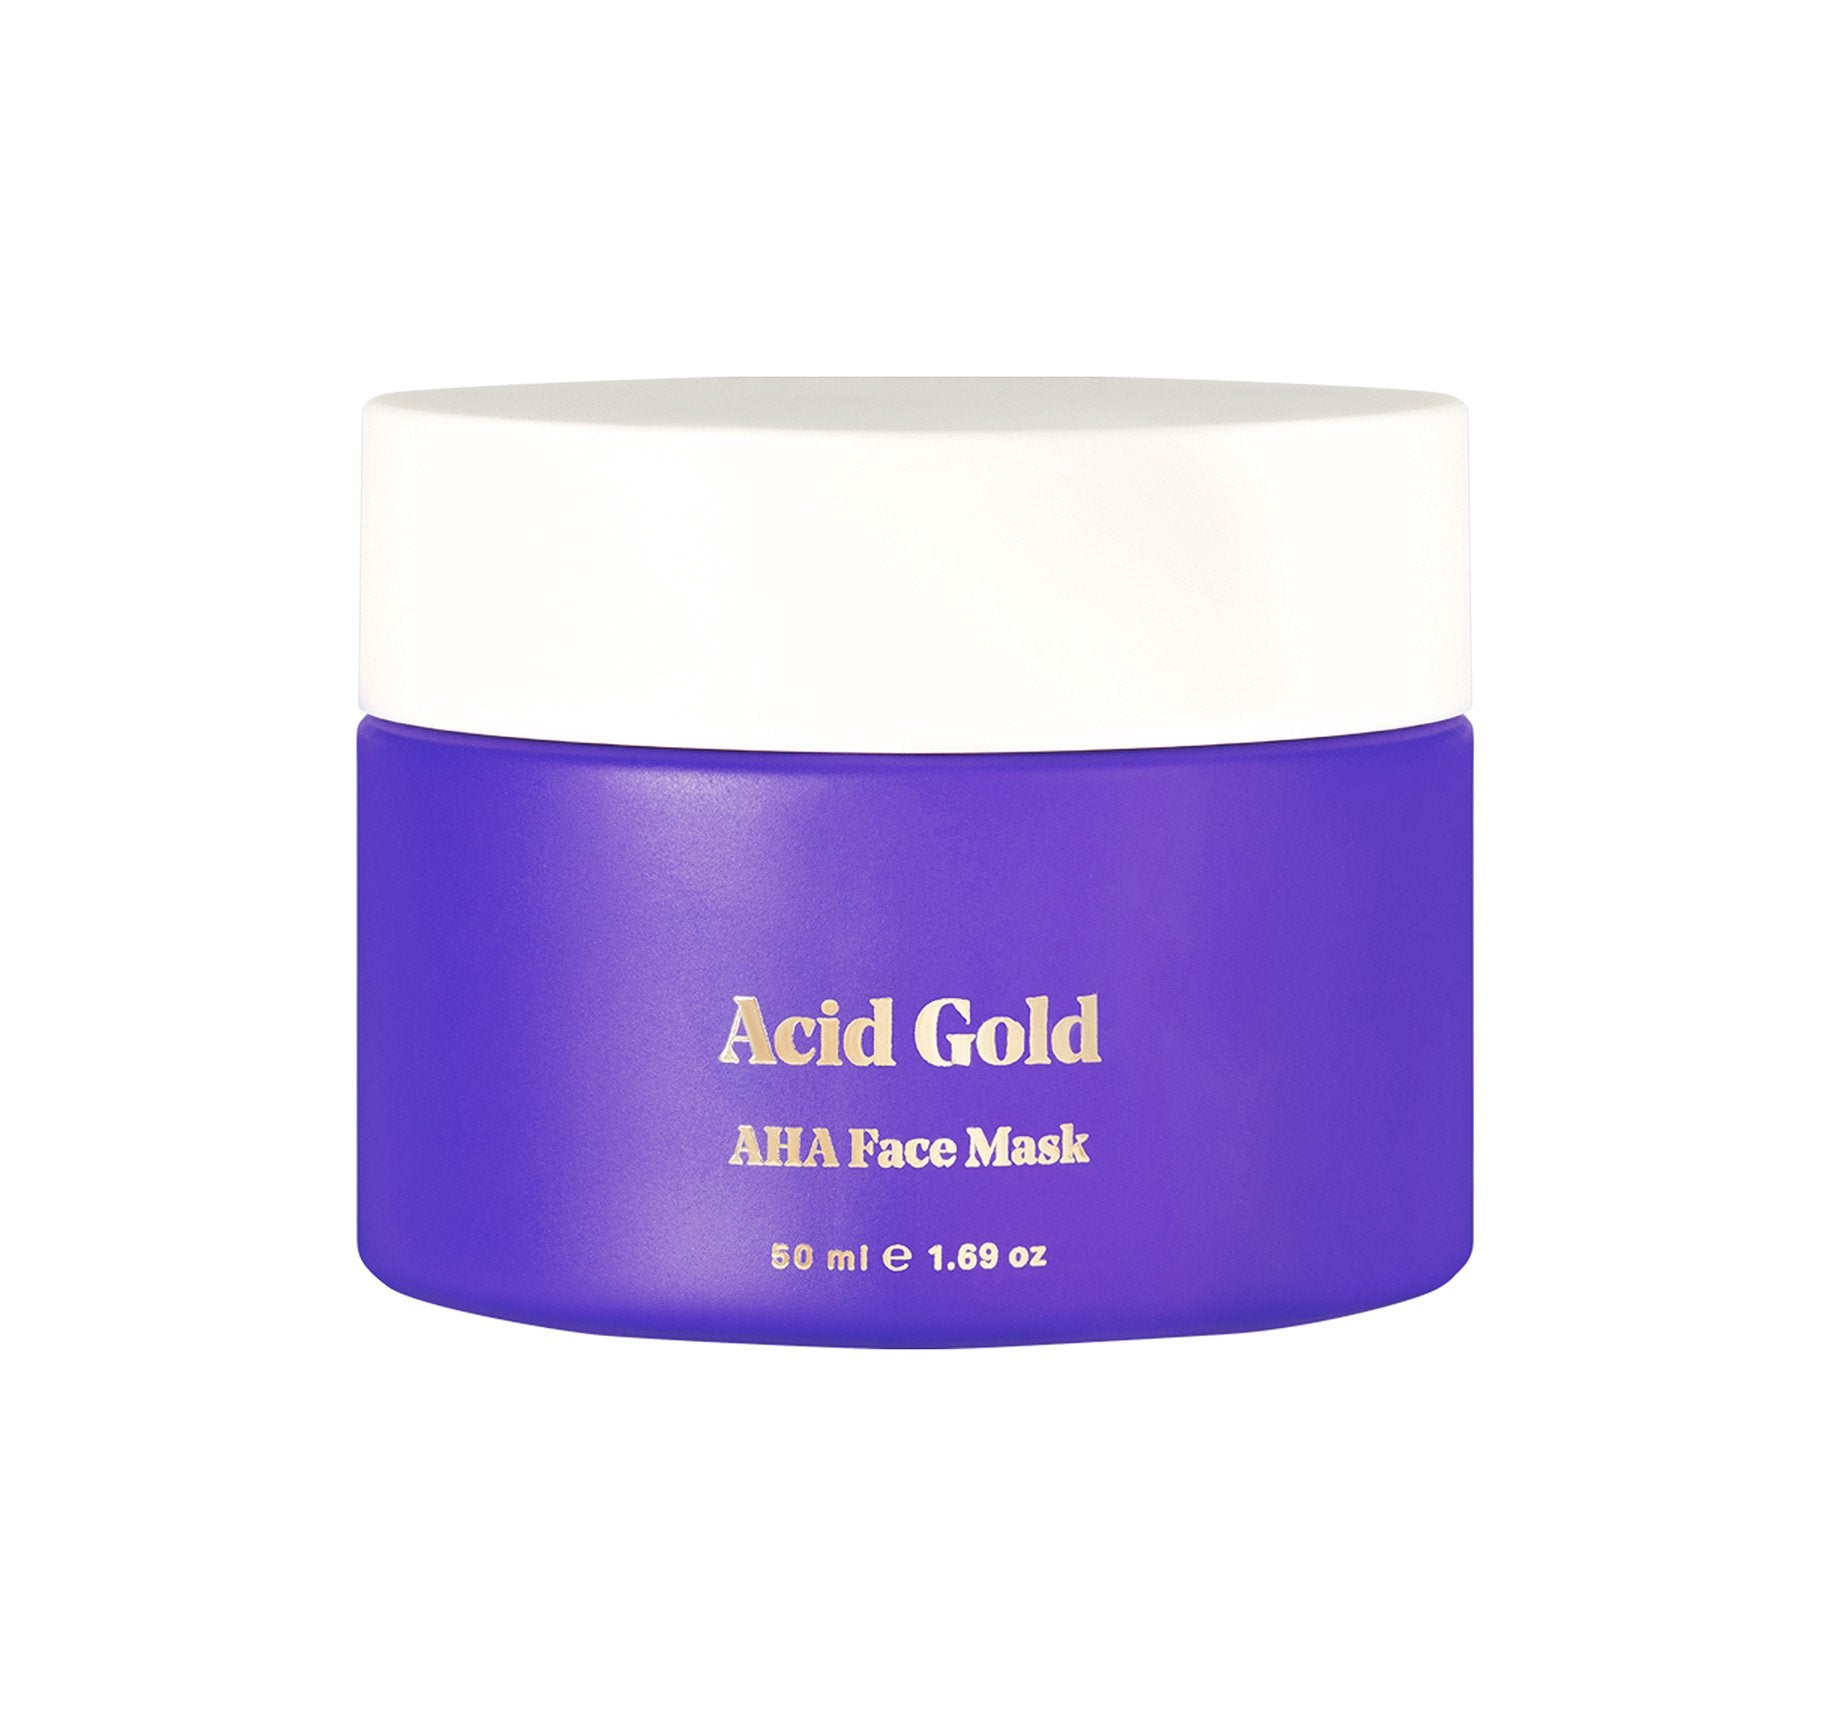 ACID GOLD AHA RESURFACING FACE MASK, view larger image